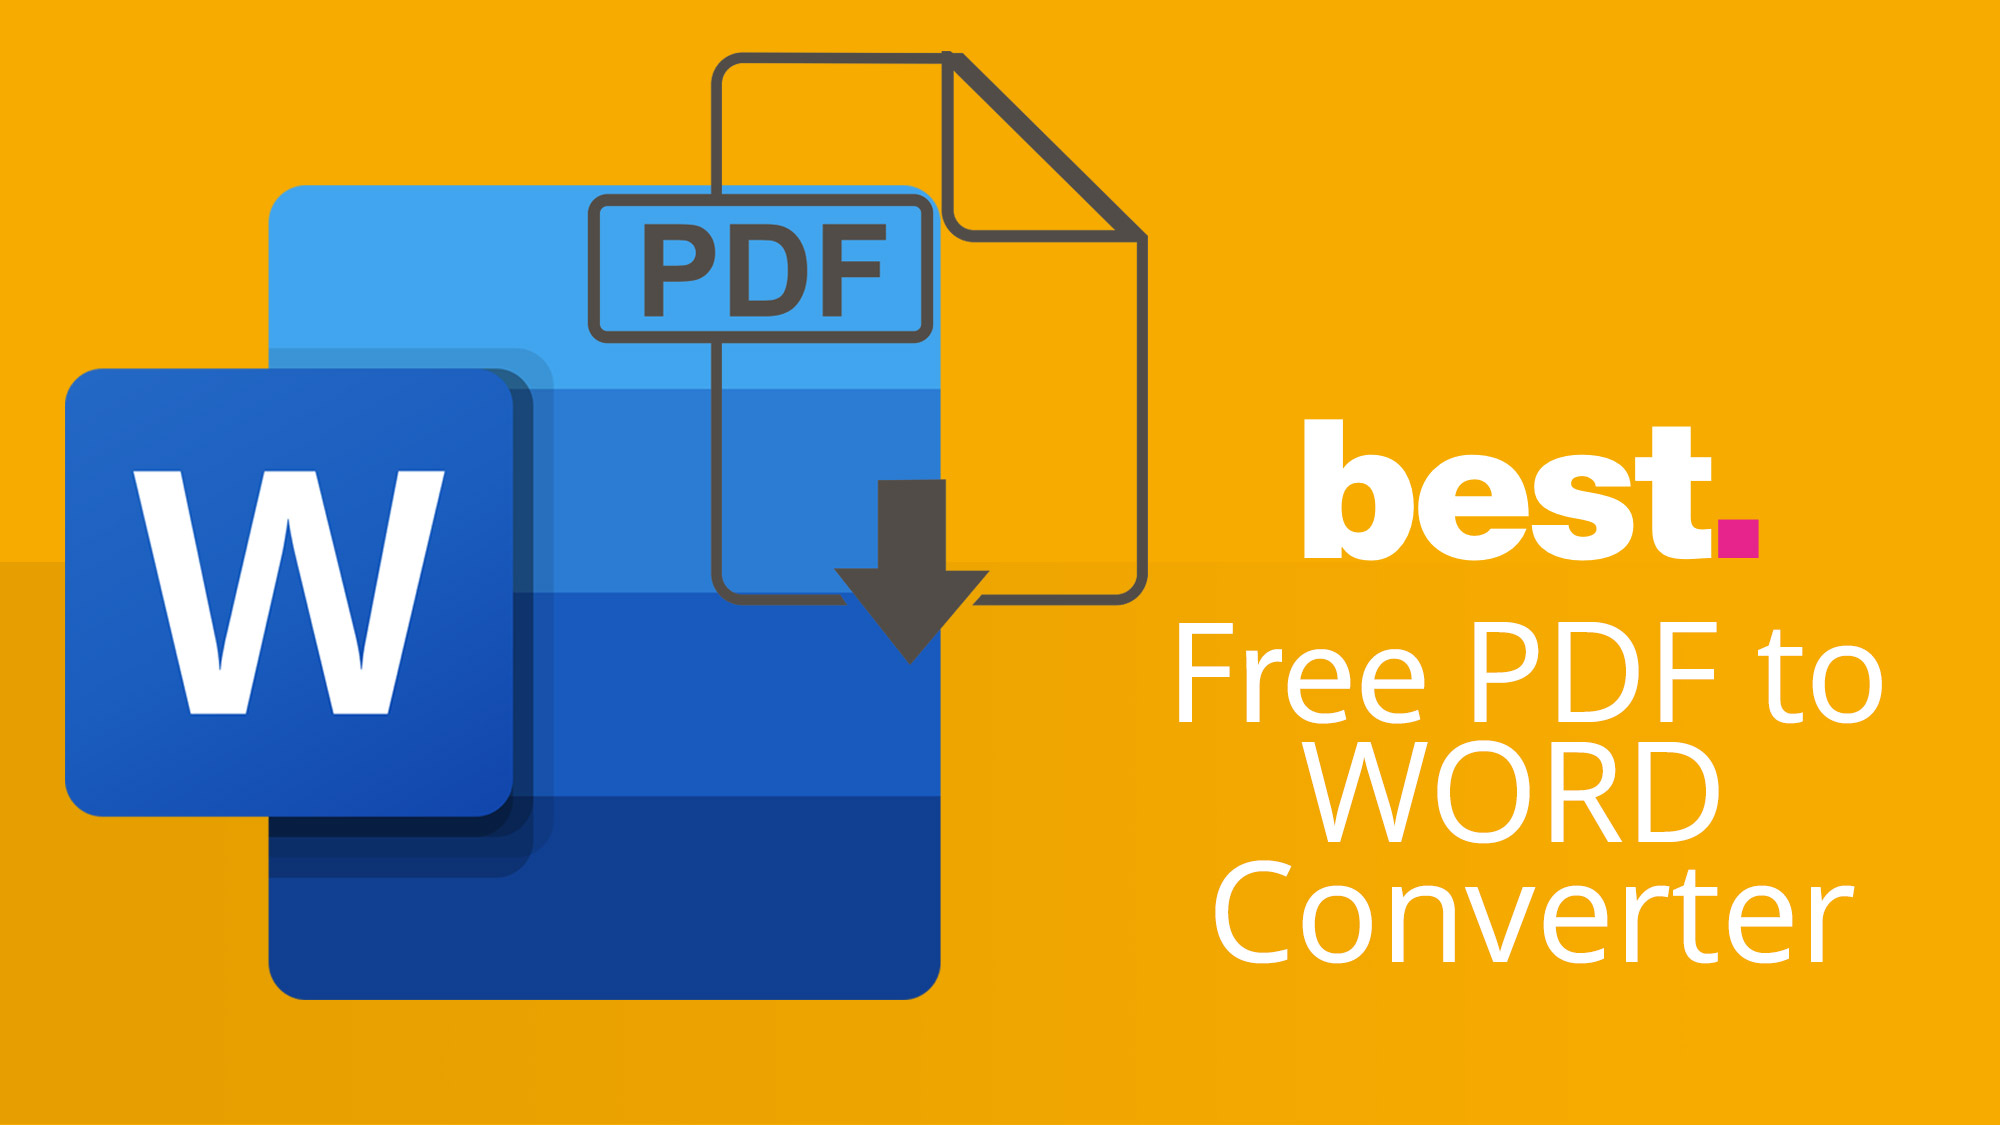 convert word to pdf online free no email